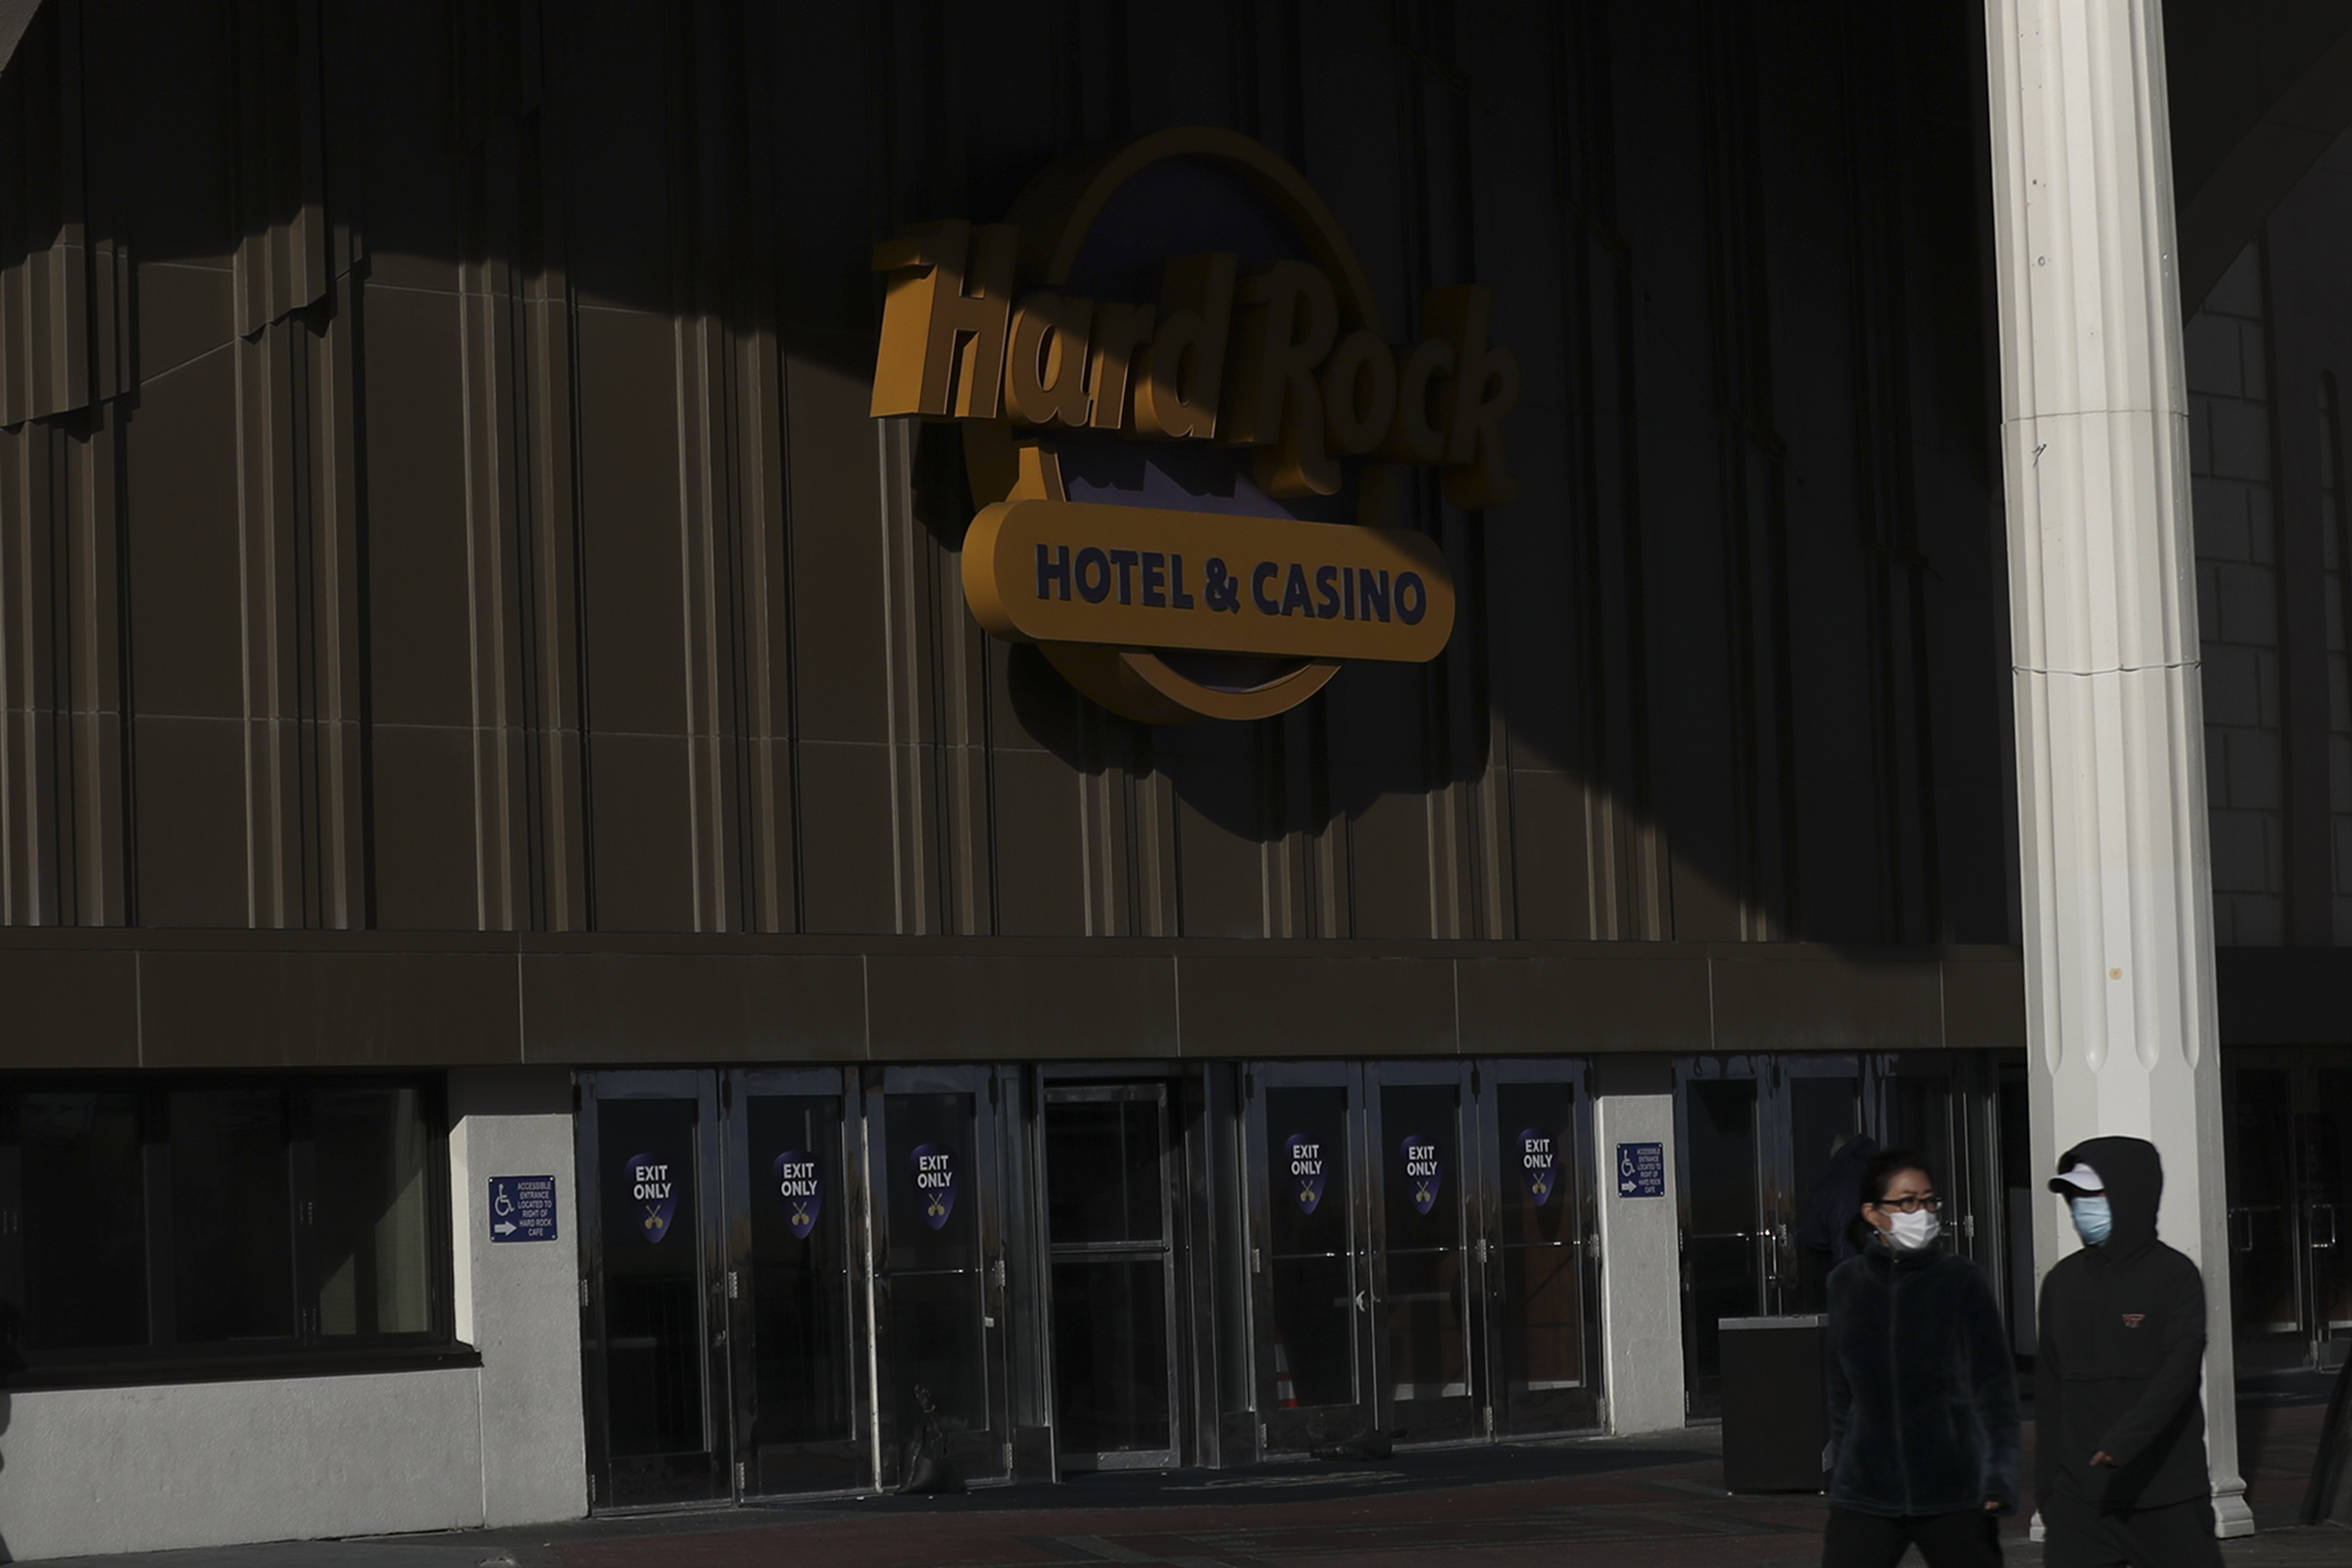 Inside Atlantic City S Casinos Bettors Still Willing To Gamble With Covid 19